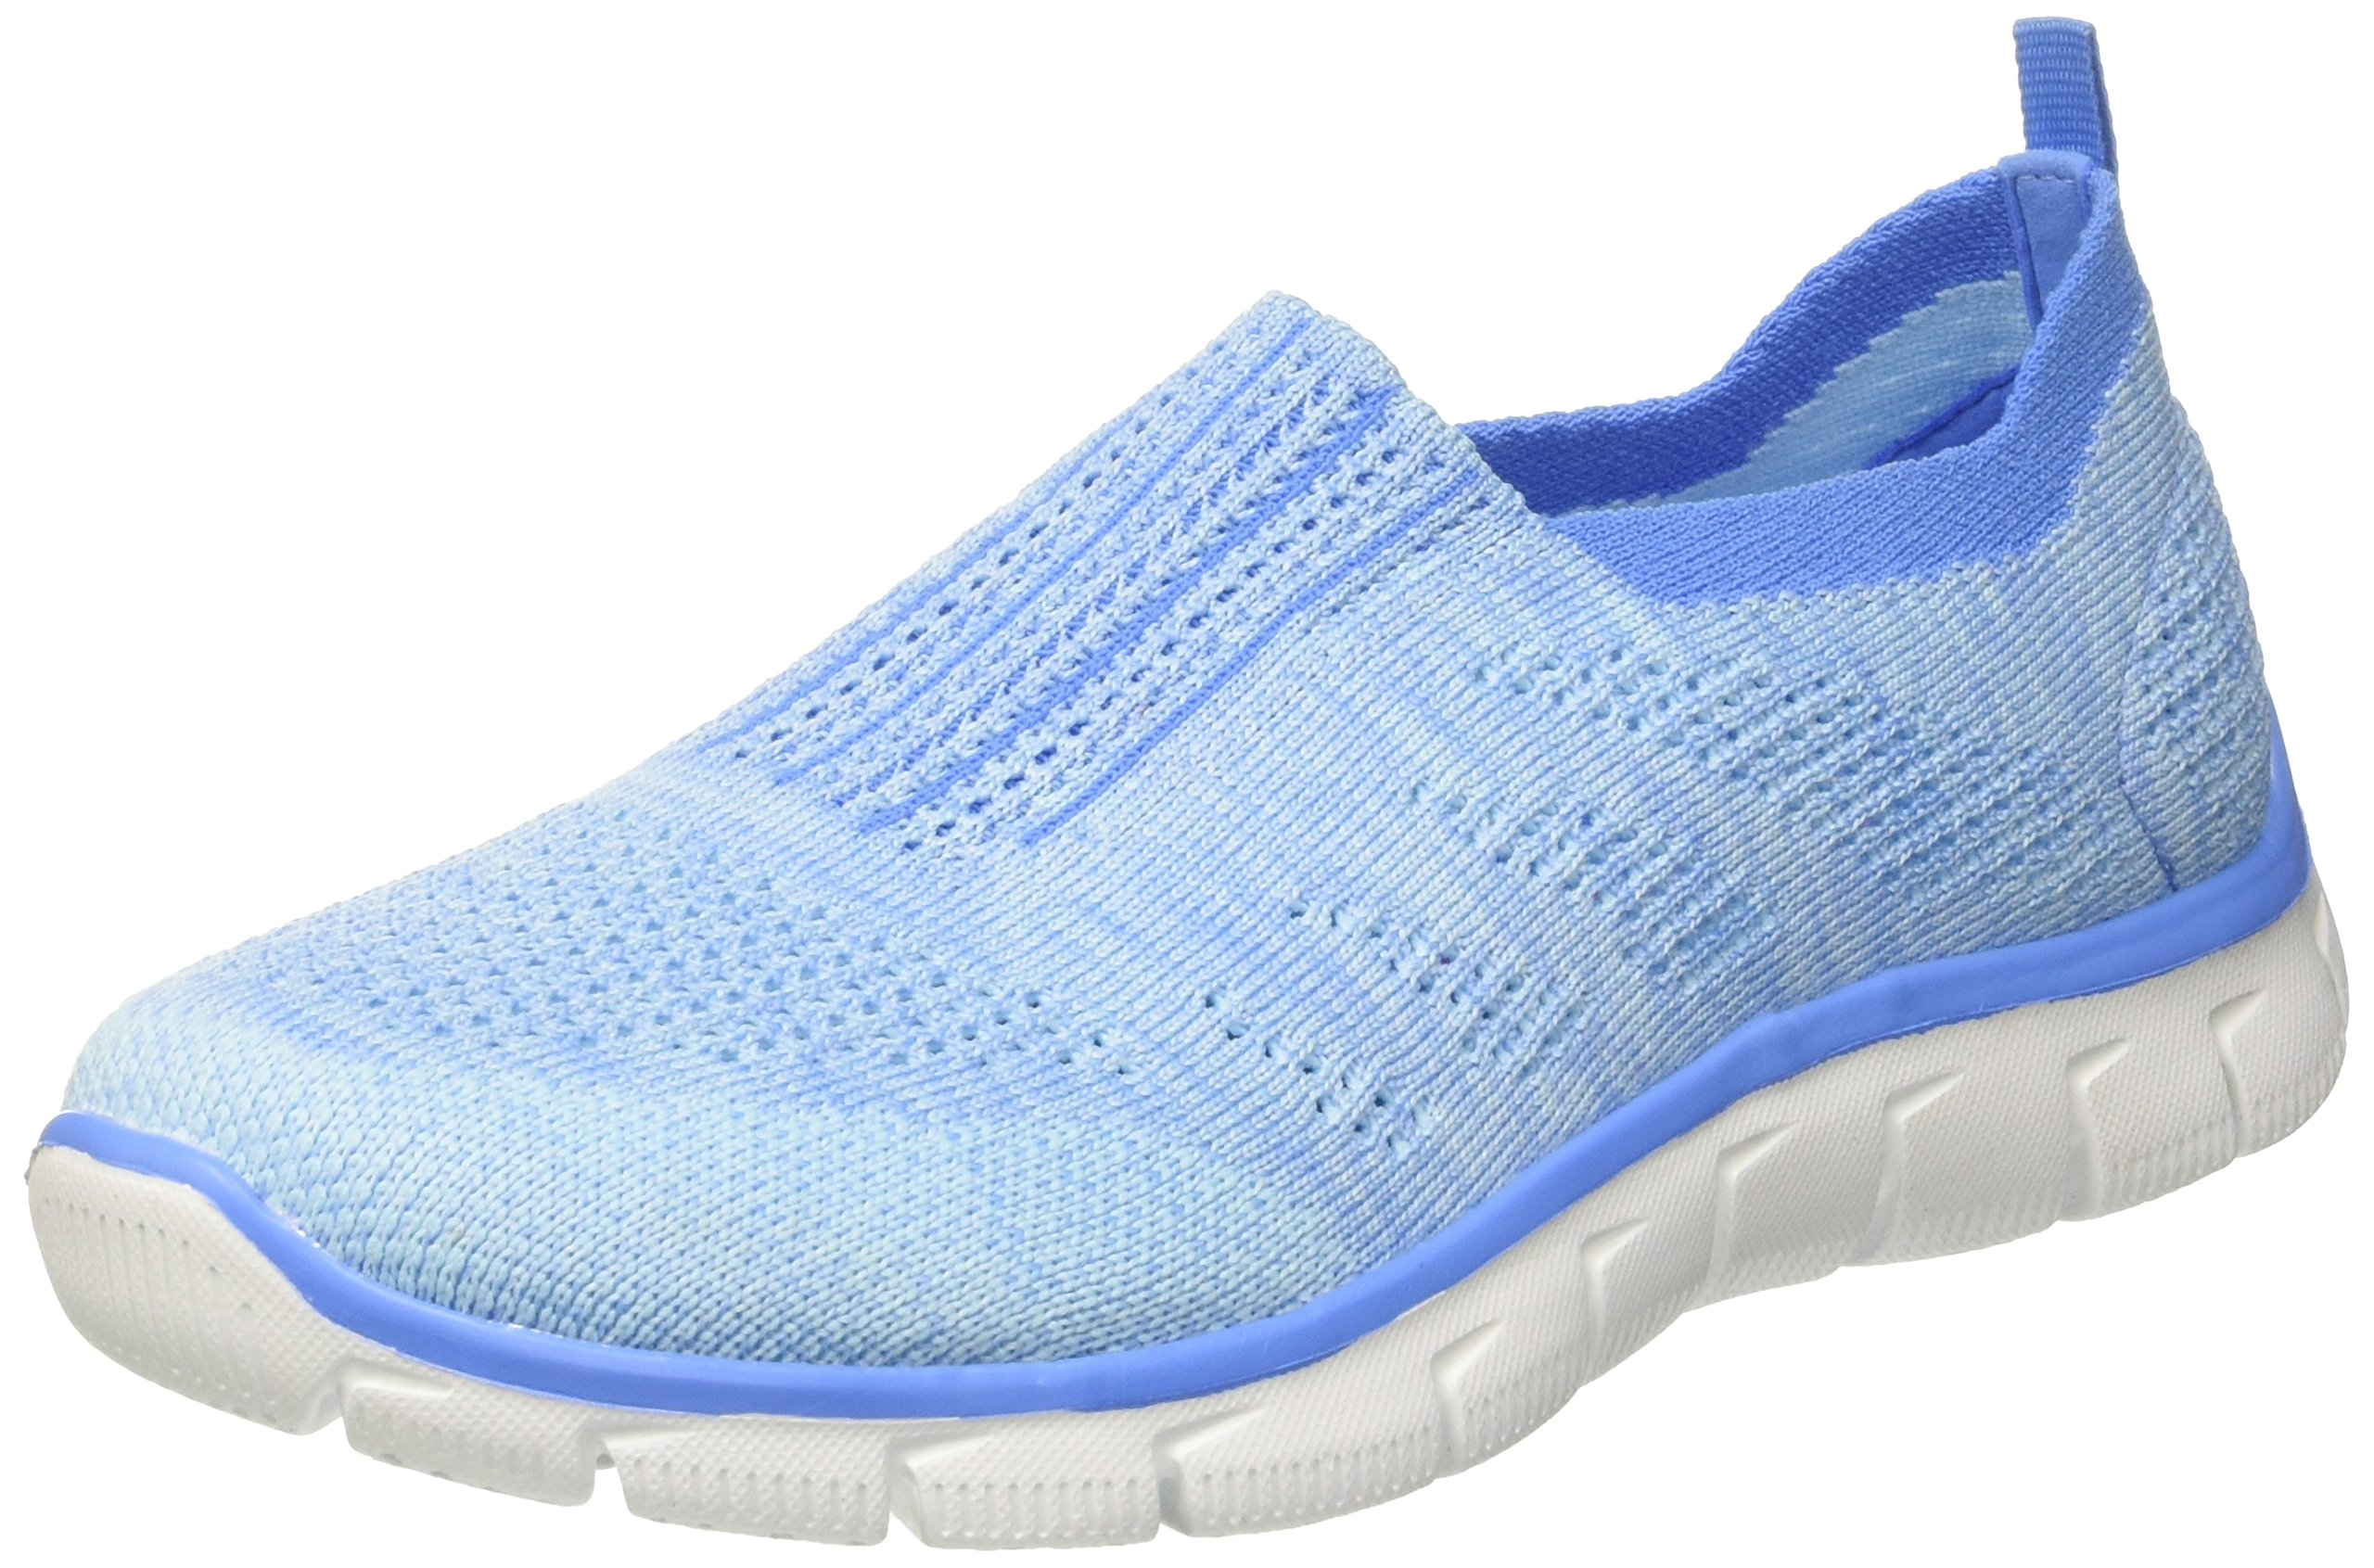 SKECHERS Damen Sportschuhe Sneakers Empire Inside Look